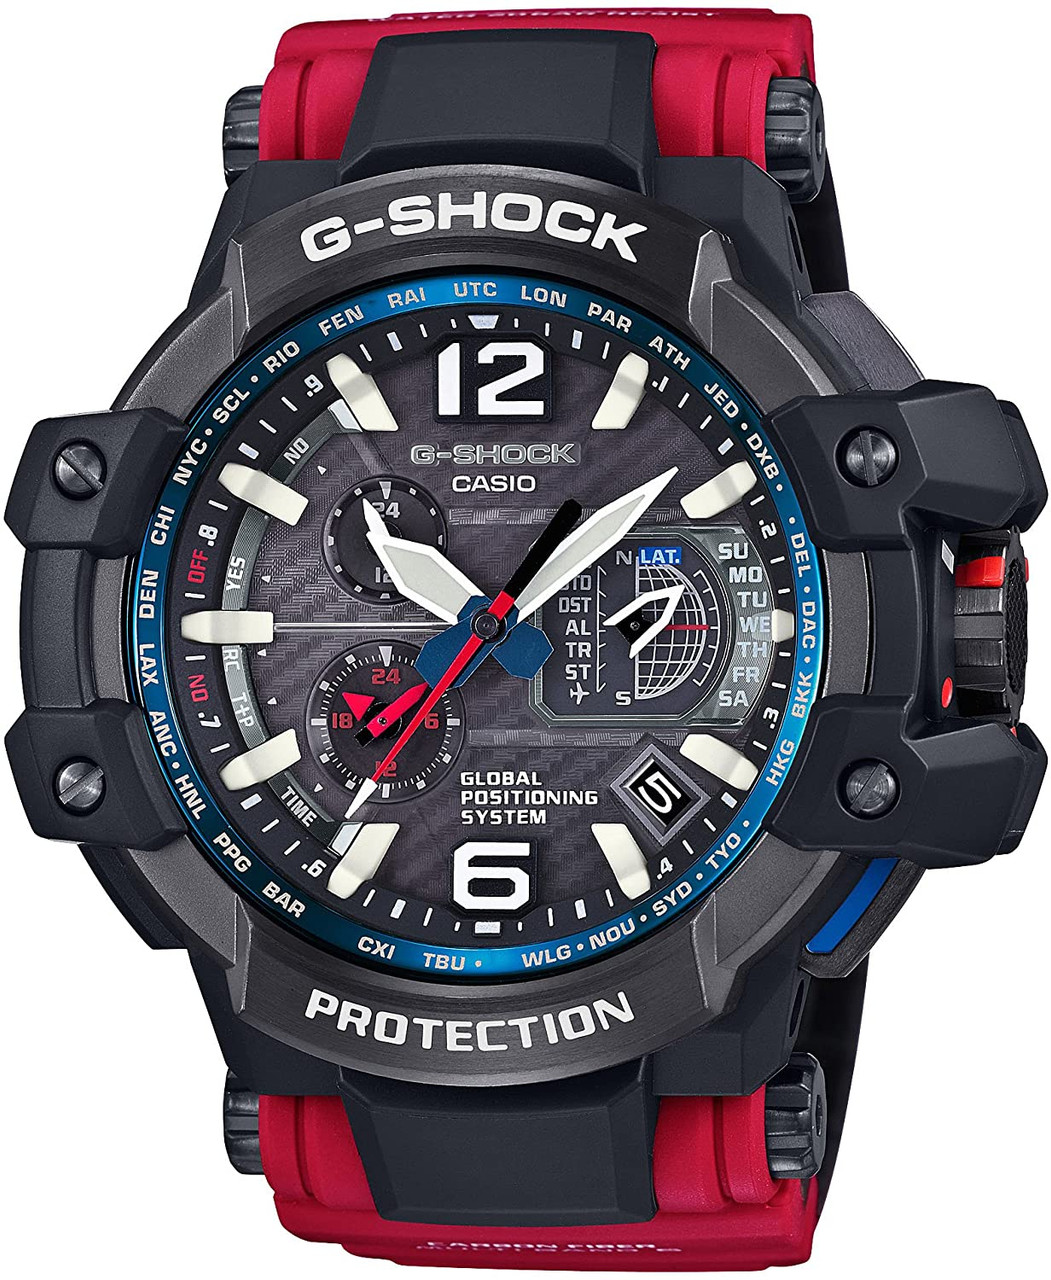 Casio GravityMaster Rescue Red Series GPW-1000RD-4AJF